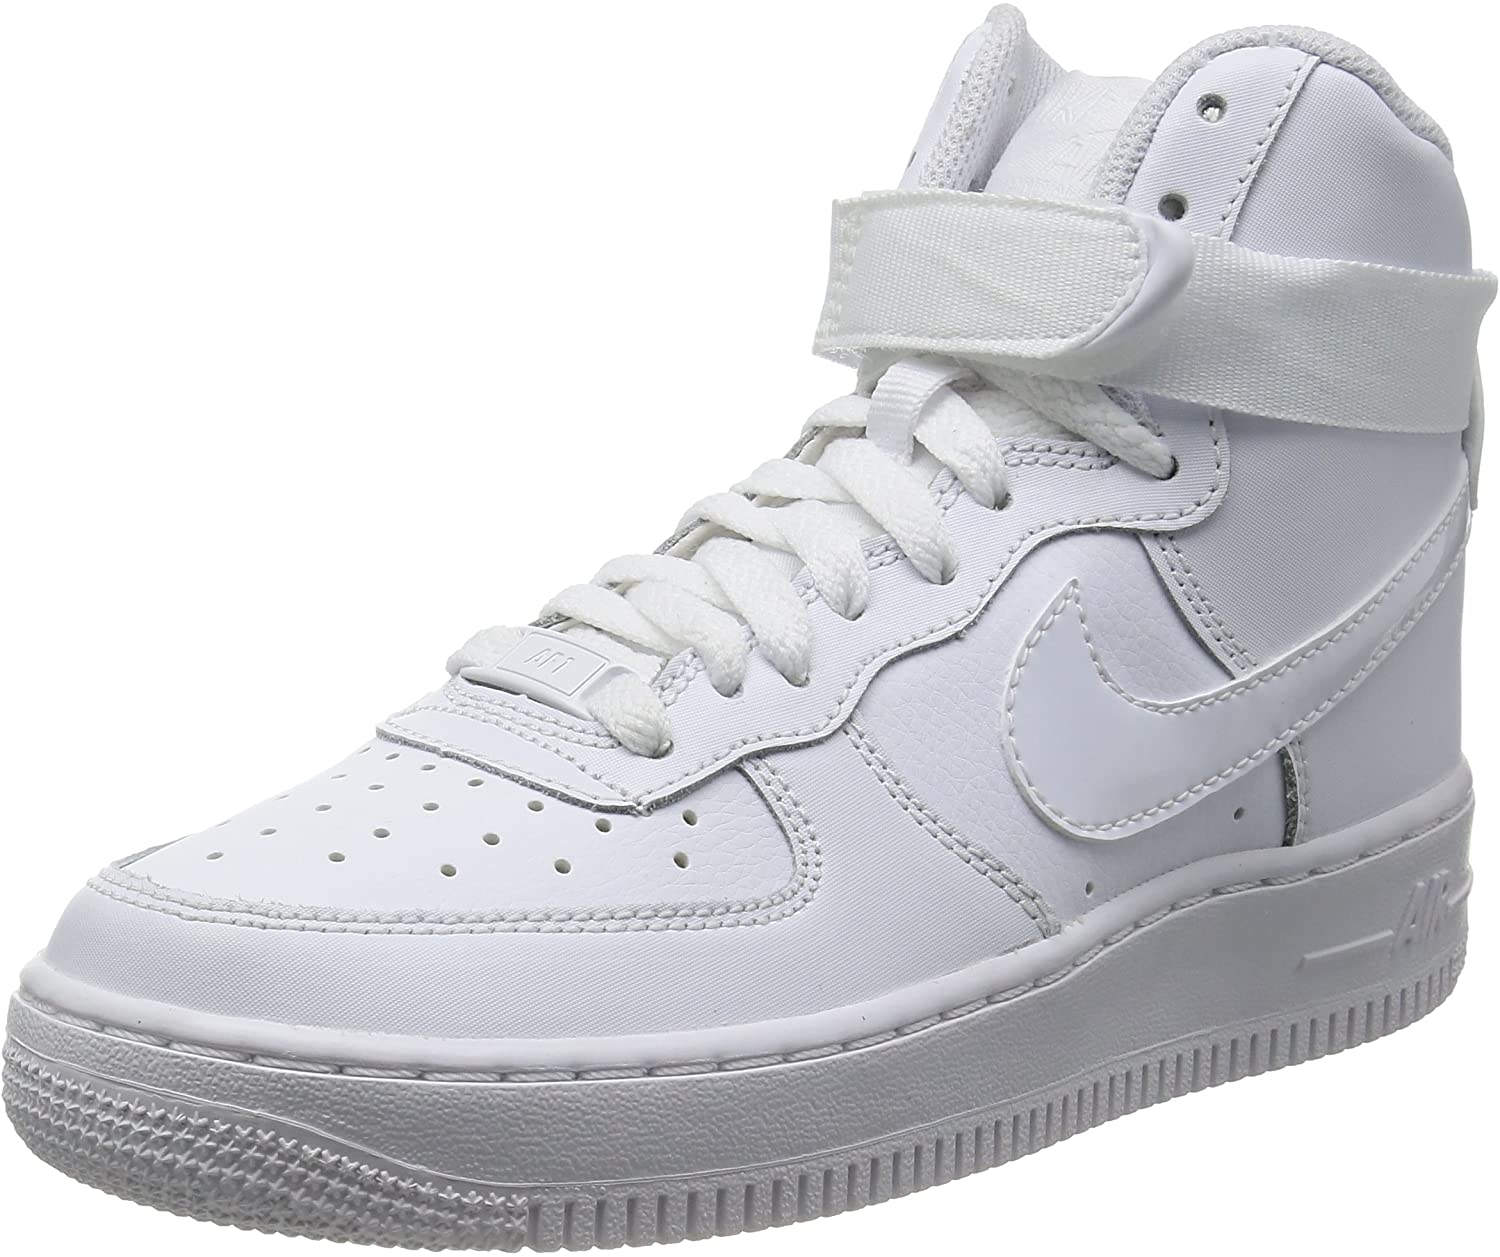 Nike Kids Air Force 1 High (GS) Basketball shoes